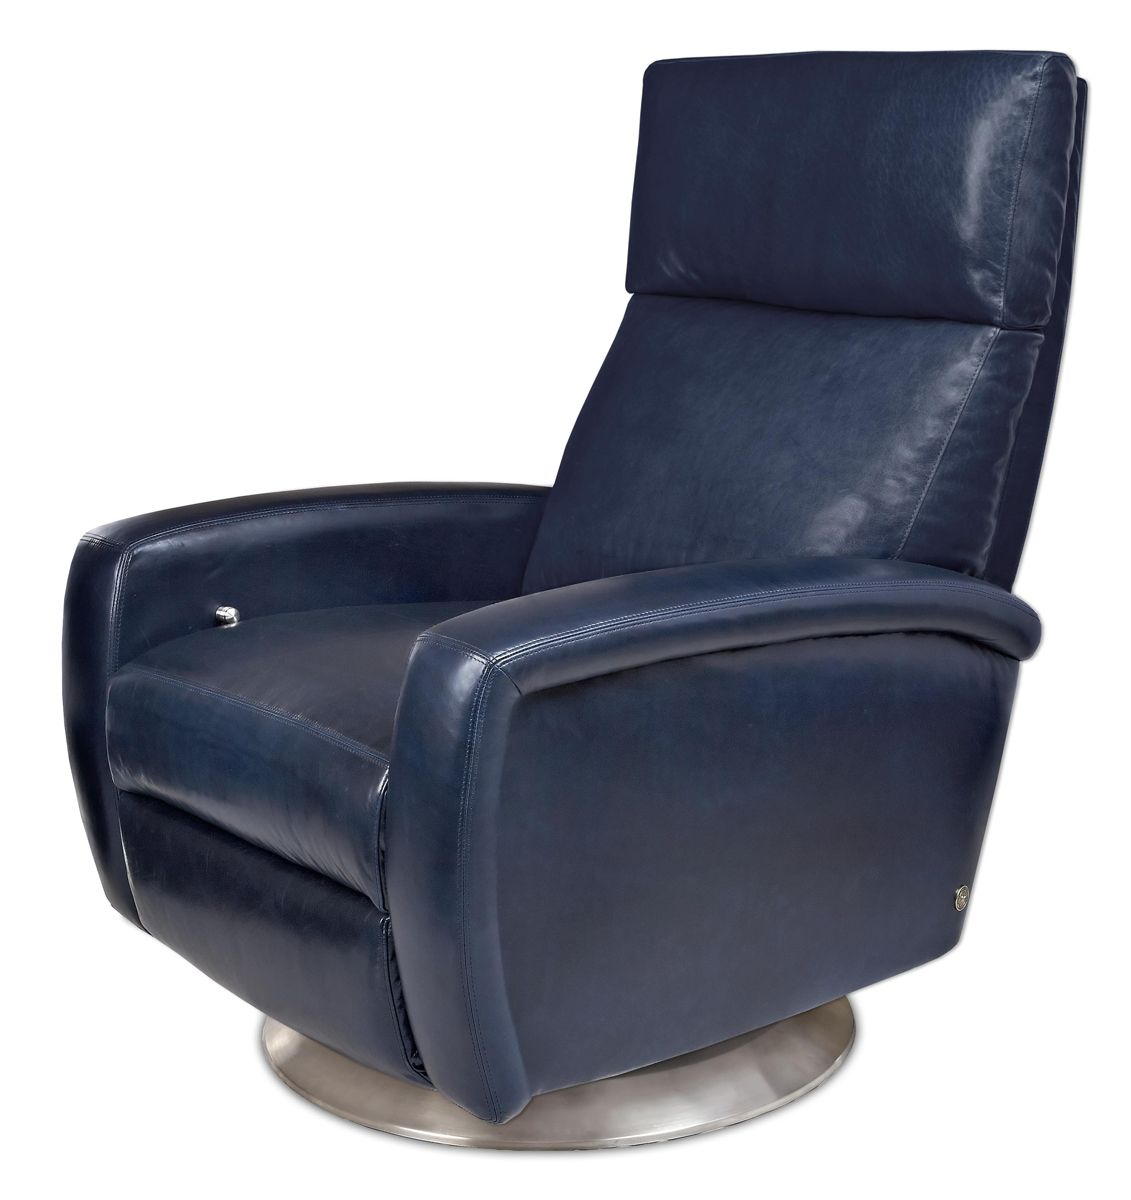 American Leather S Comfort Recliner And Comfort Theatre